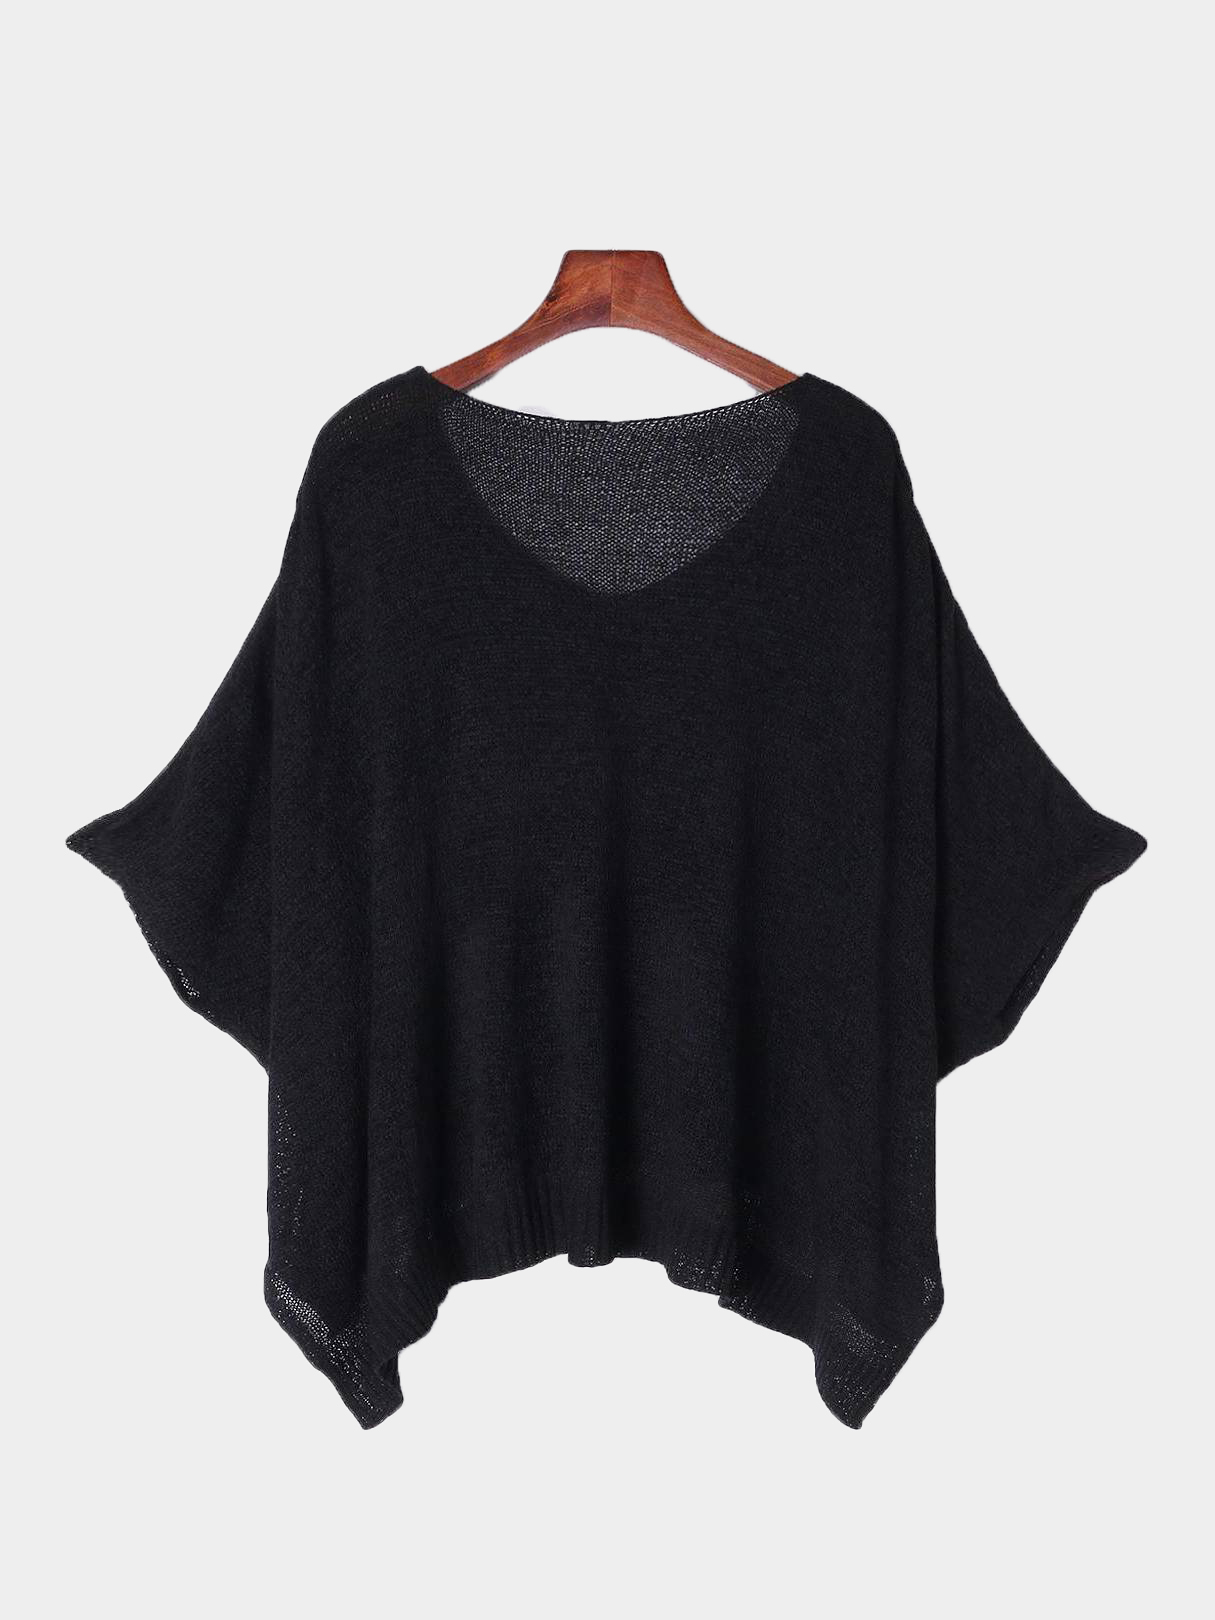 Black Rips Details Irregular Hem Loose Sweaters geometrical pattern cape loose sweater with taeesl details